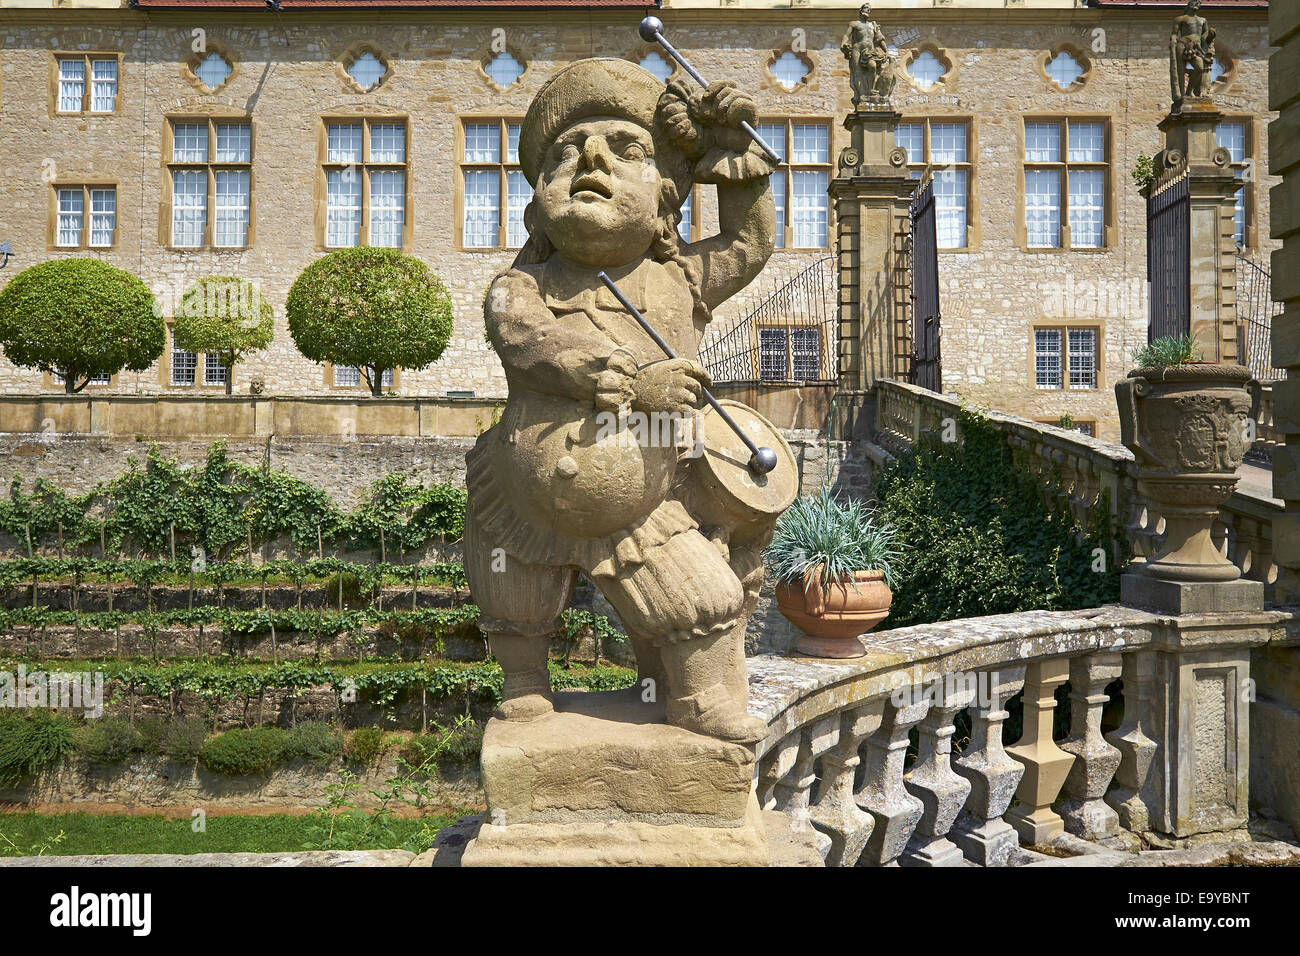 Sandstone figure of the drummer on Weikersheim Castle, Baden-Wuerttemberg, Germany - Stock Image